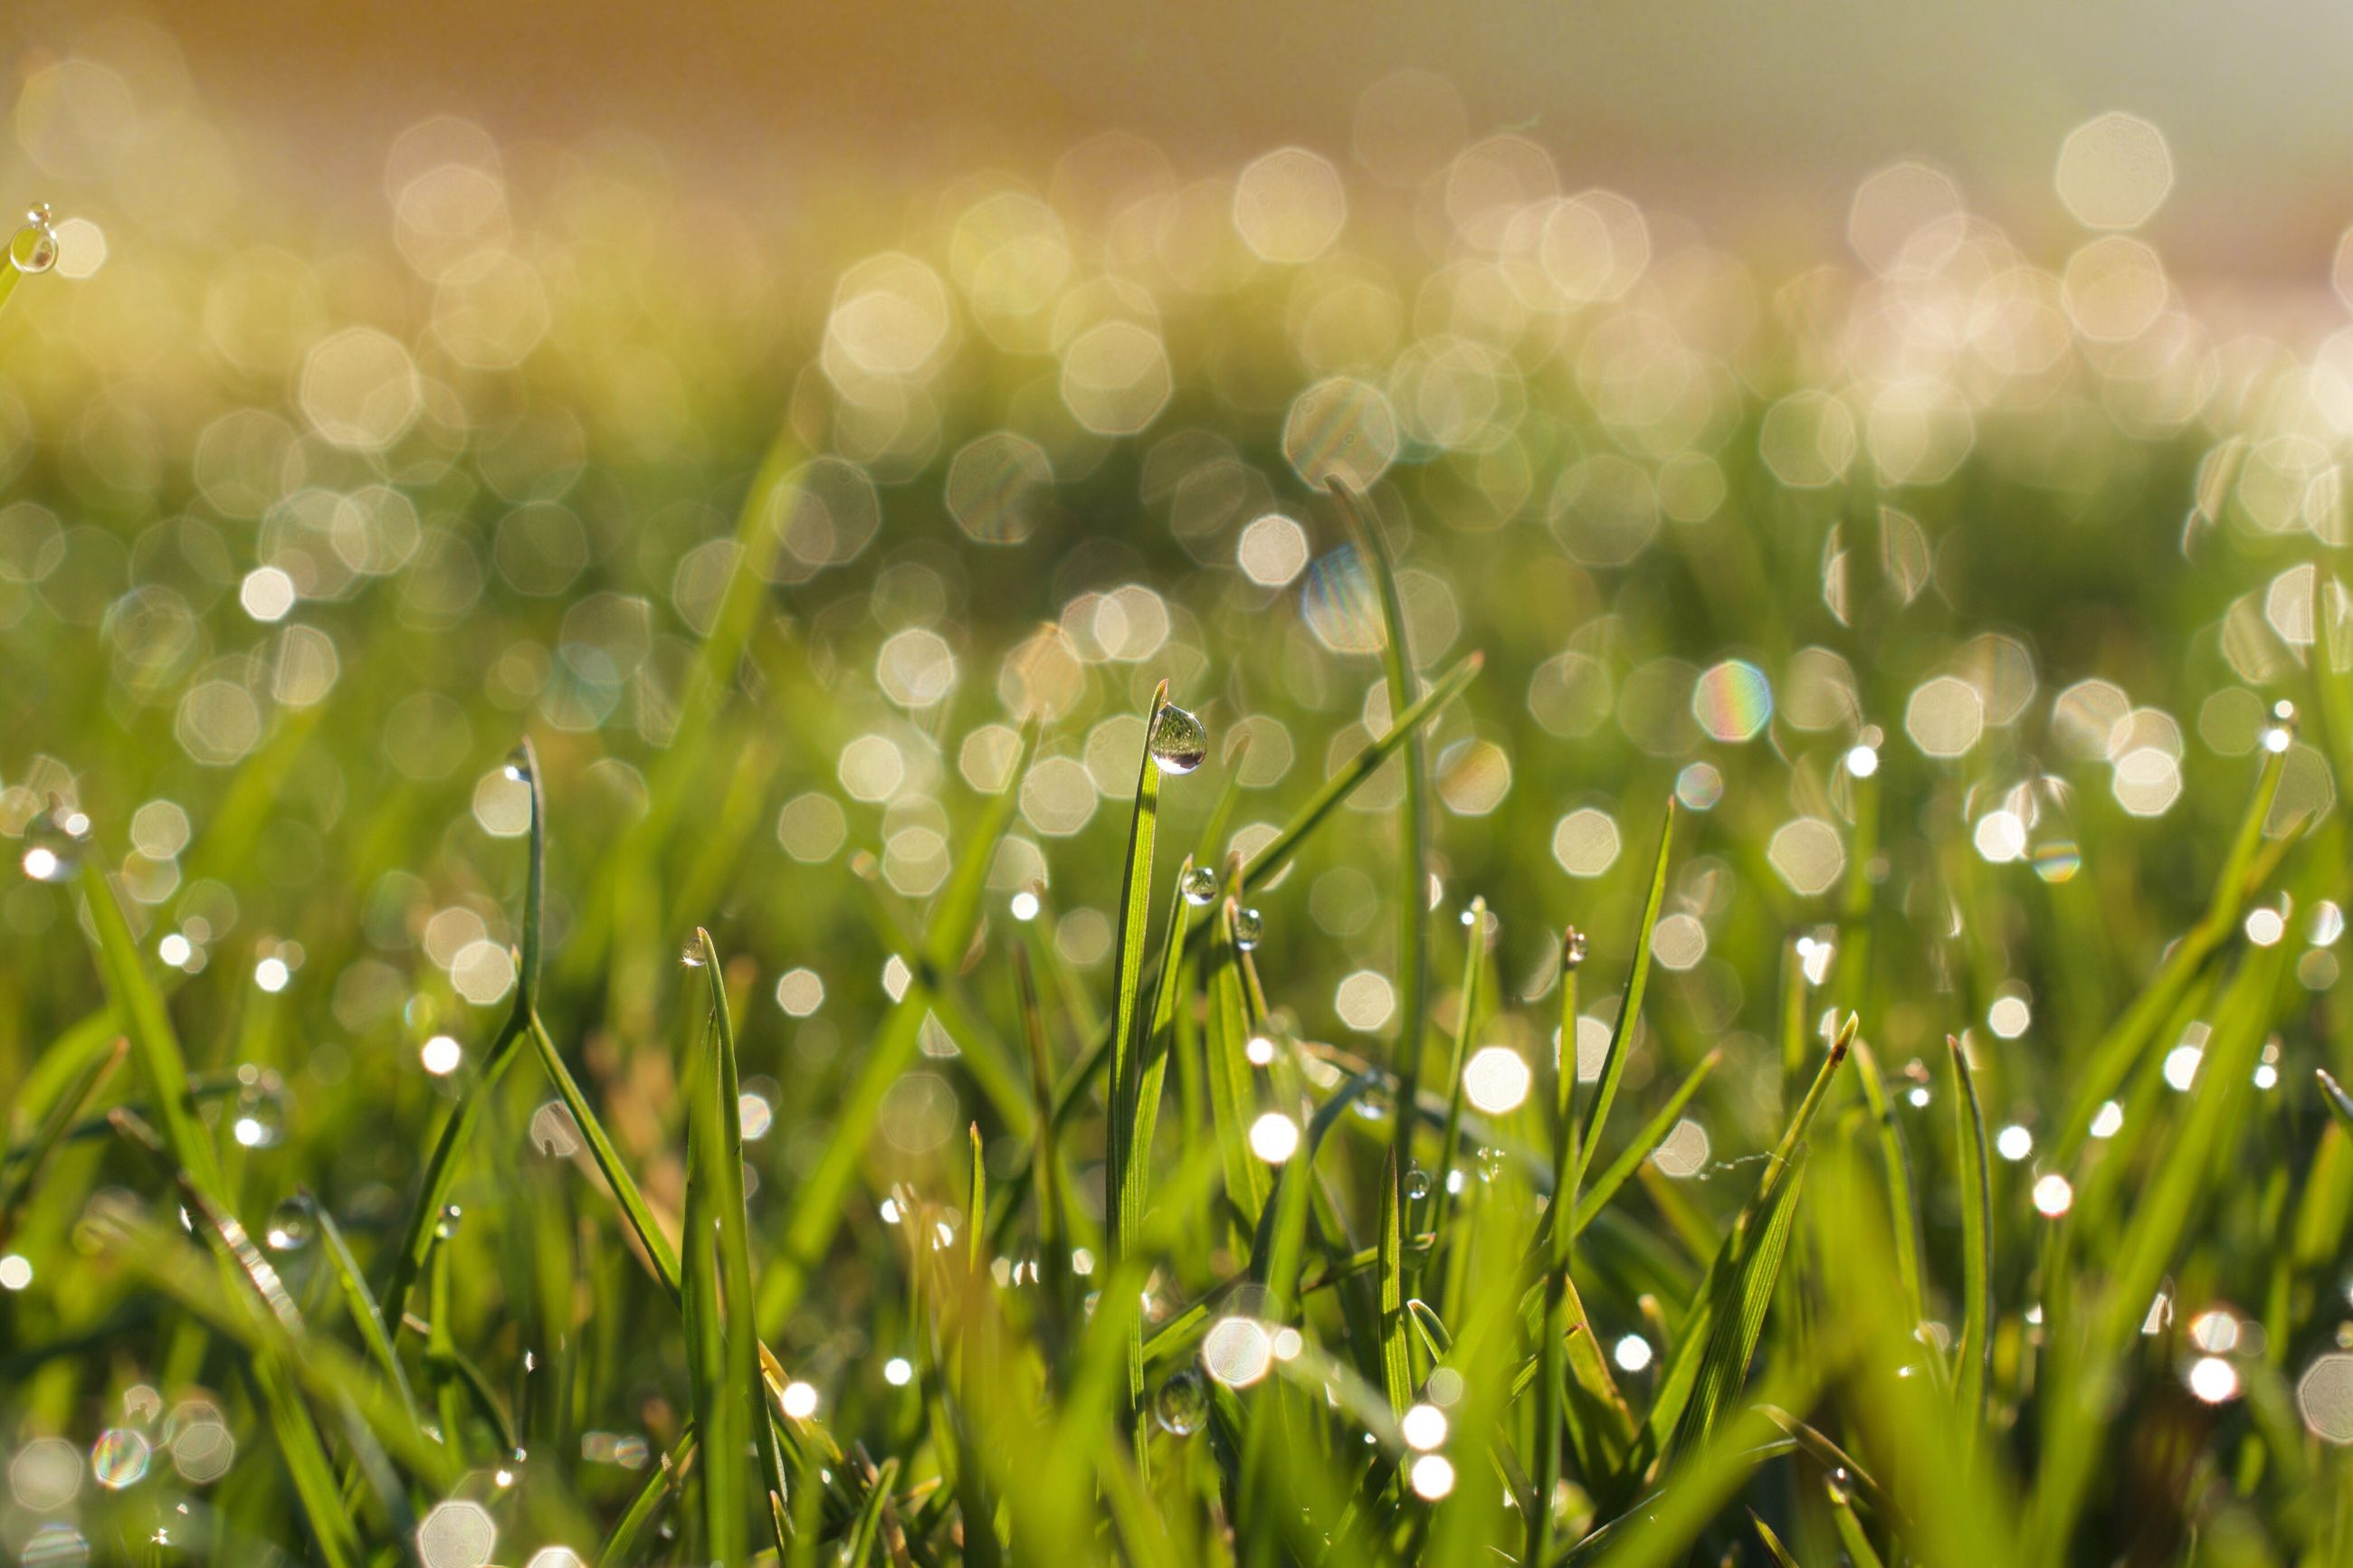 growth, flower, freshness, fragility, beauty in nature, nature, plant, field, green color, focus on foreground, close-up, selective focus, white color, blooming, flower head, wildflower, grass, outdoors, day, petal